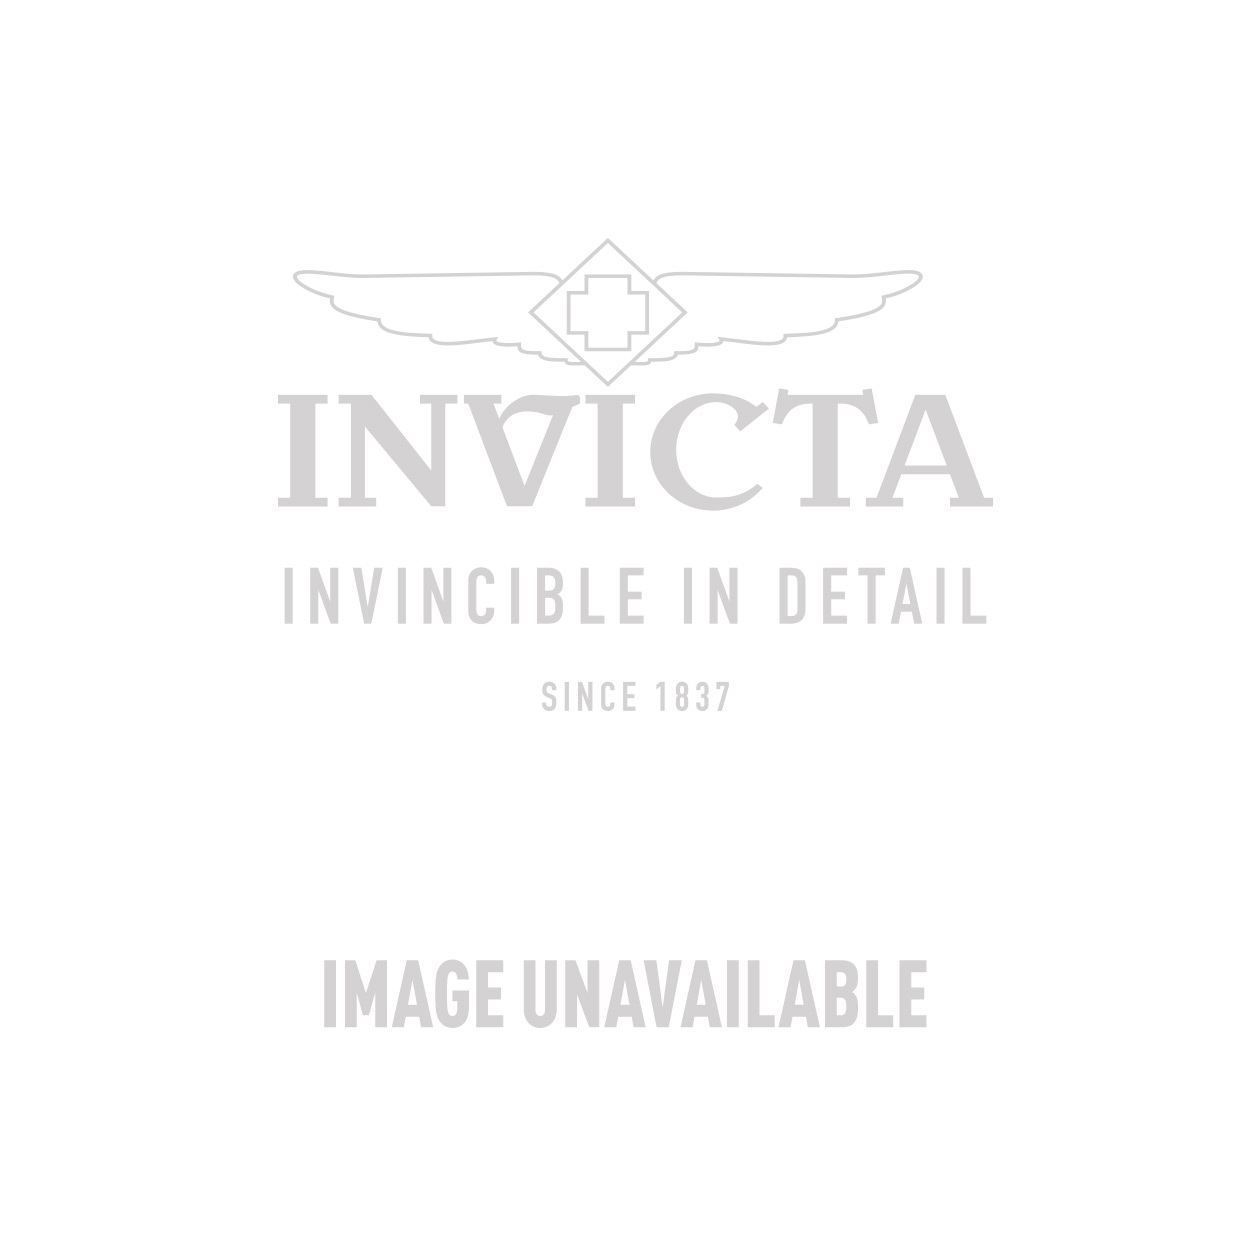 Invicta Specialty Quartz Watch - Black, Stainless Steel case with Steel, Black tone Stainless Steel band - Model 12843